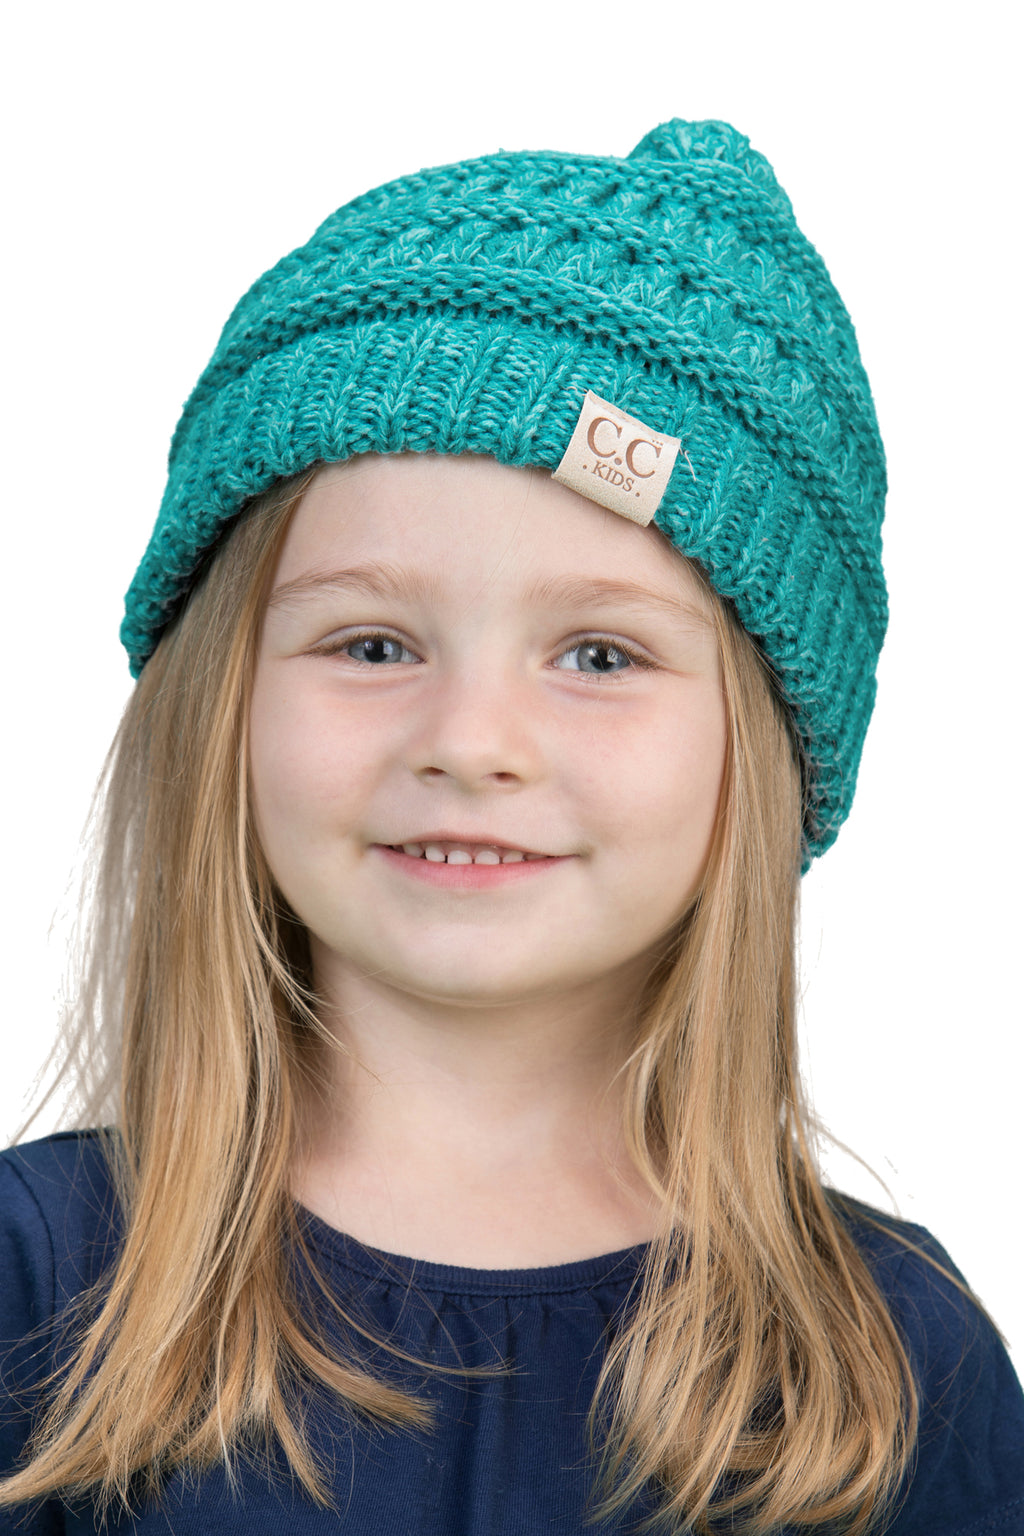 C.C. Kid's Classic Fit Cable Knit Beanie - 2-Tone